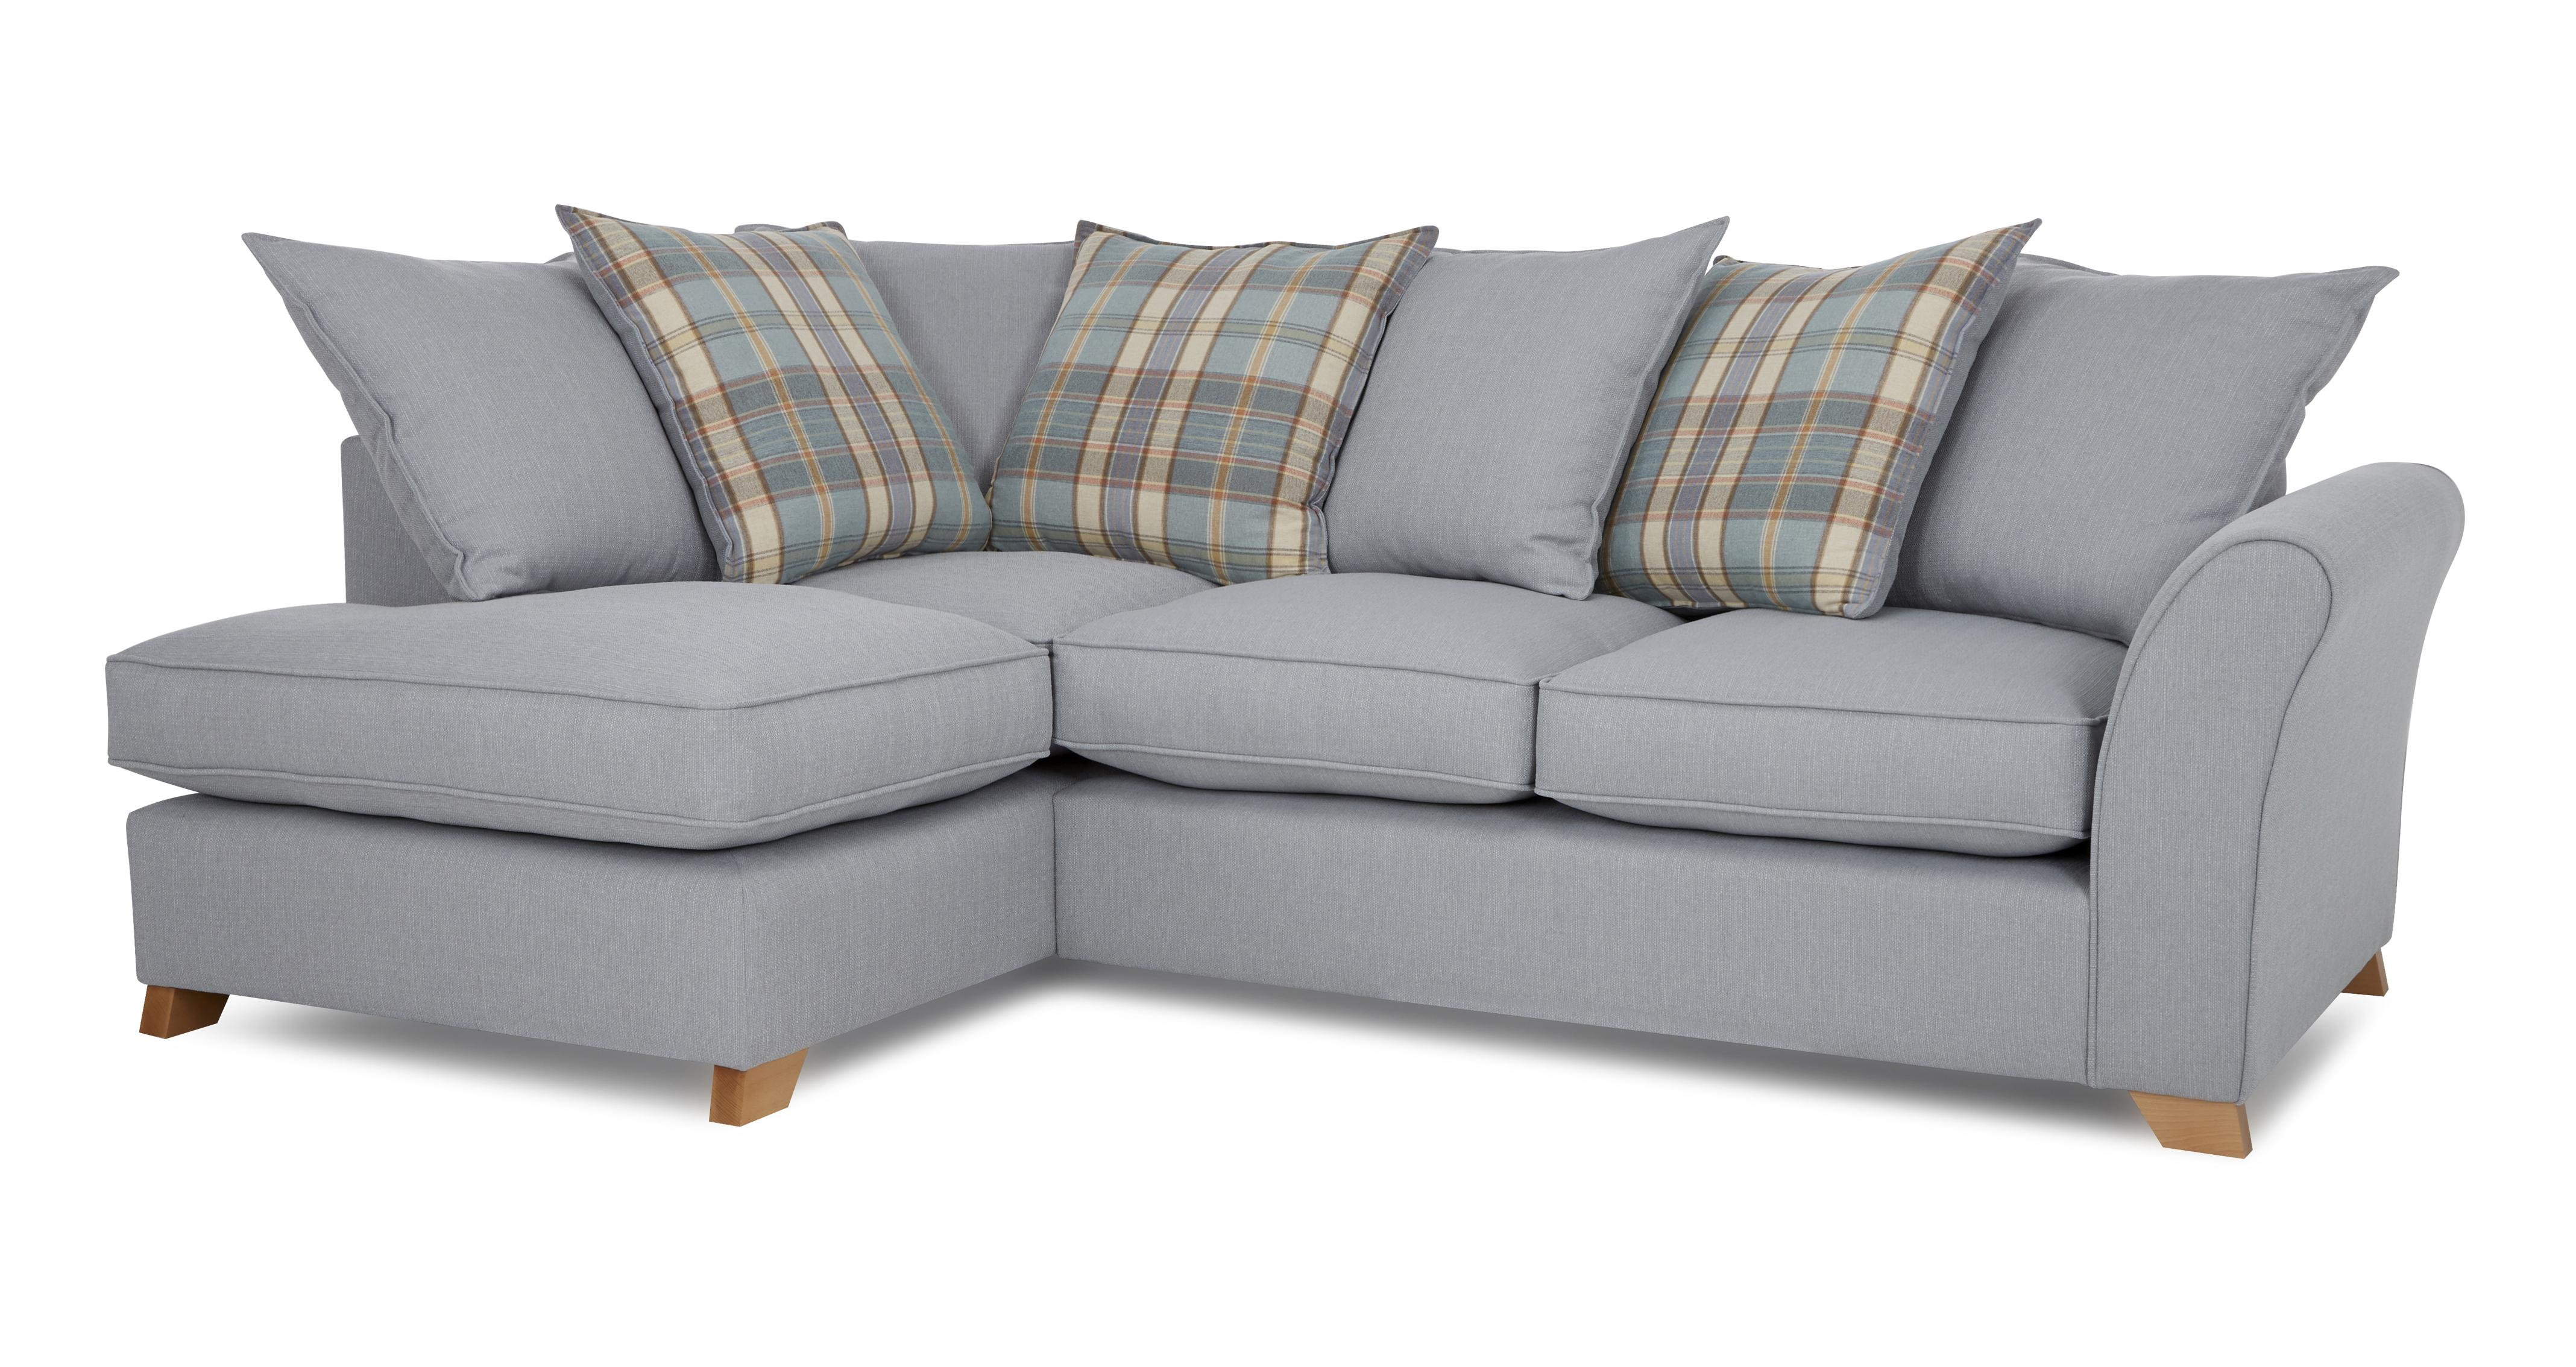 navy blue sofa bed uk two person size tate dfs baci living room